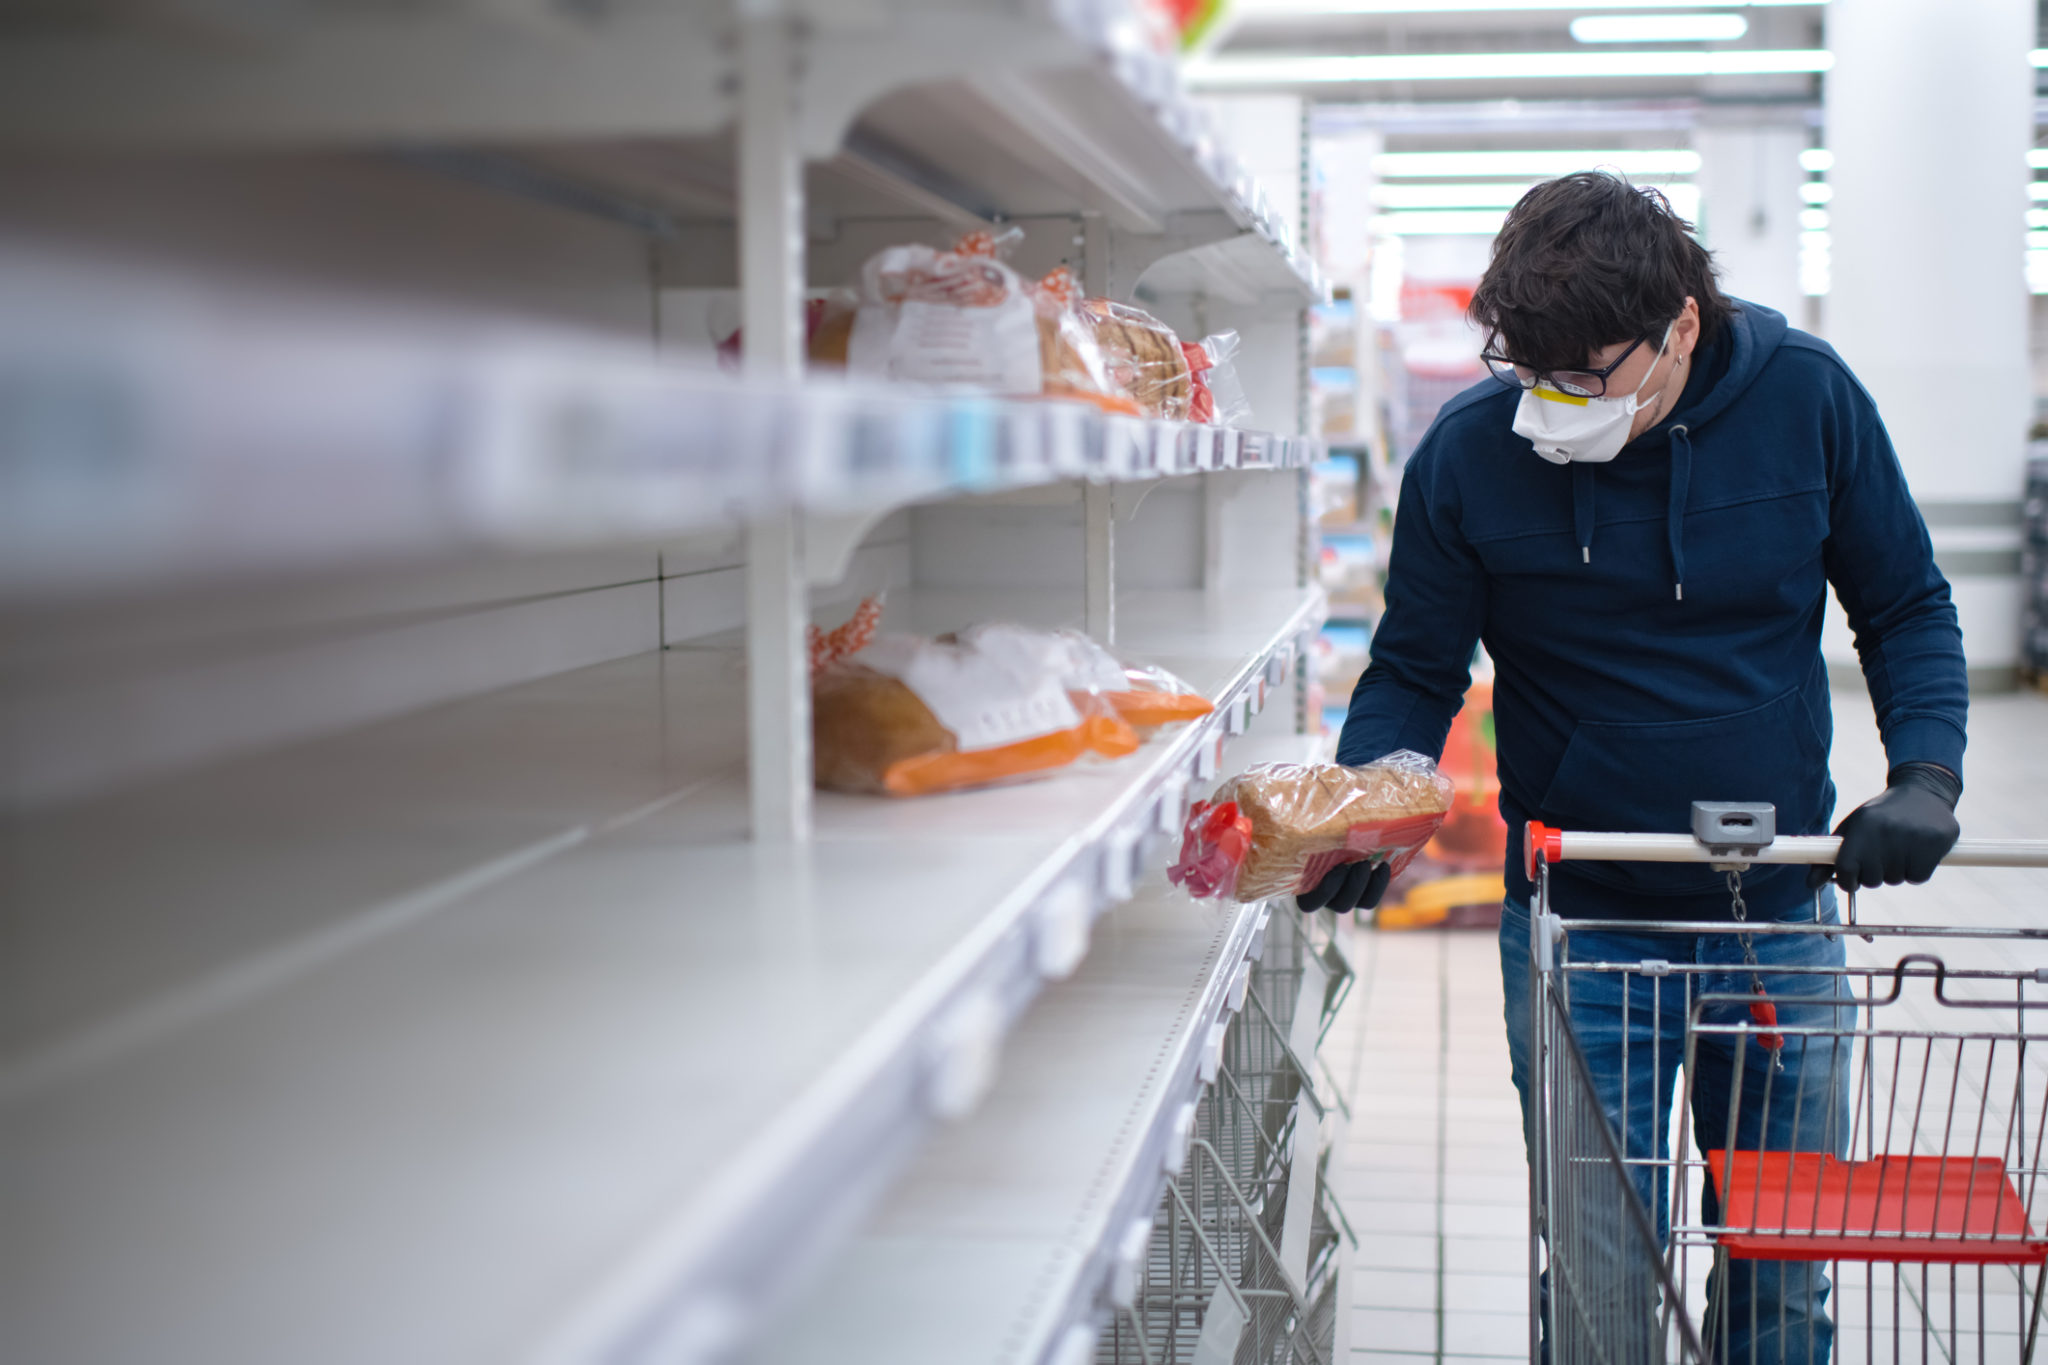 Man's hands in protective gloves searching bread on empty shelves in a groceries store